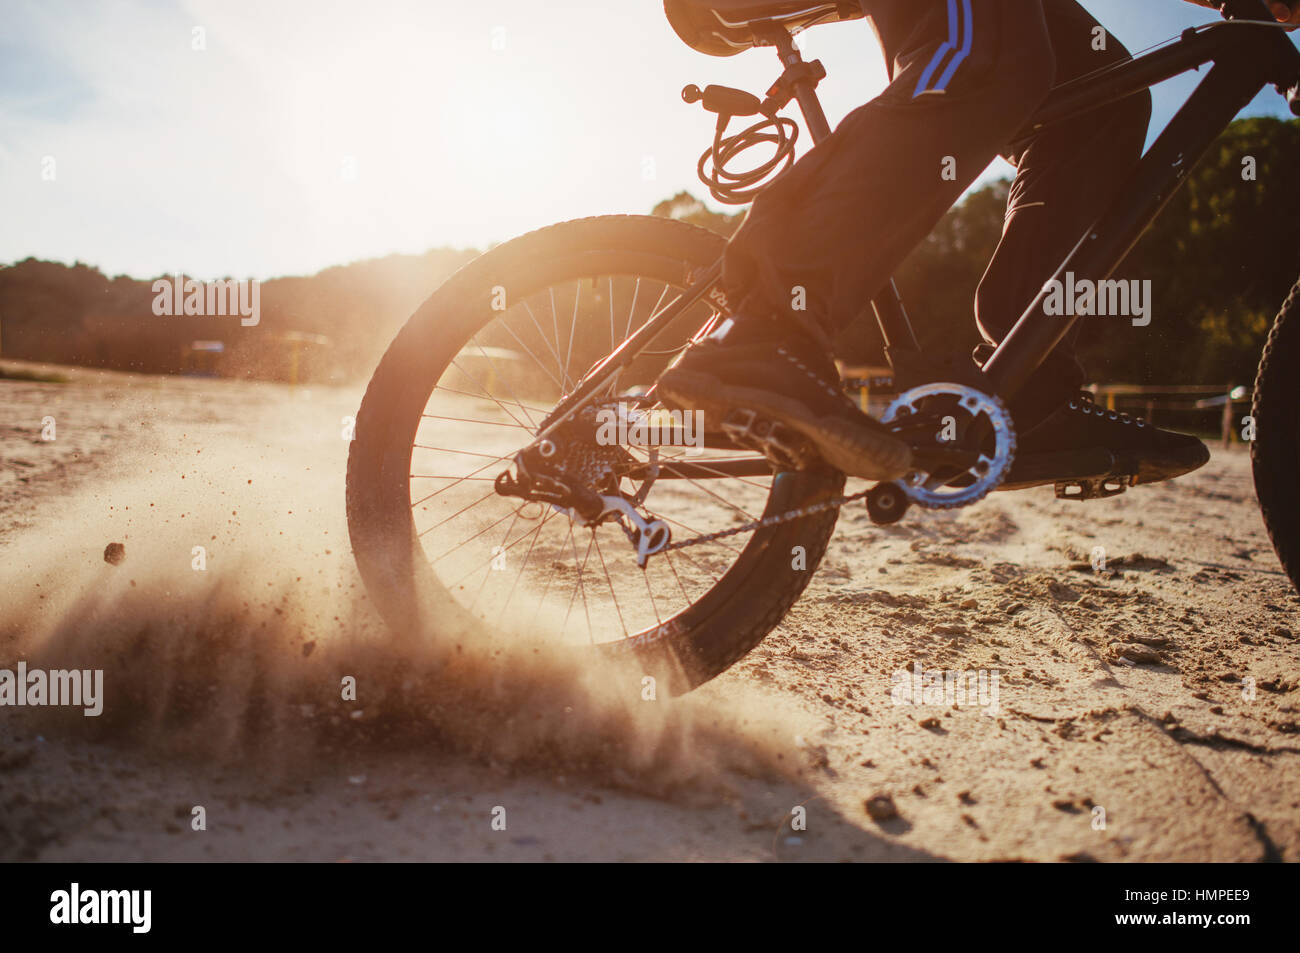 man on a bicycle - Stock Image